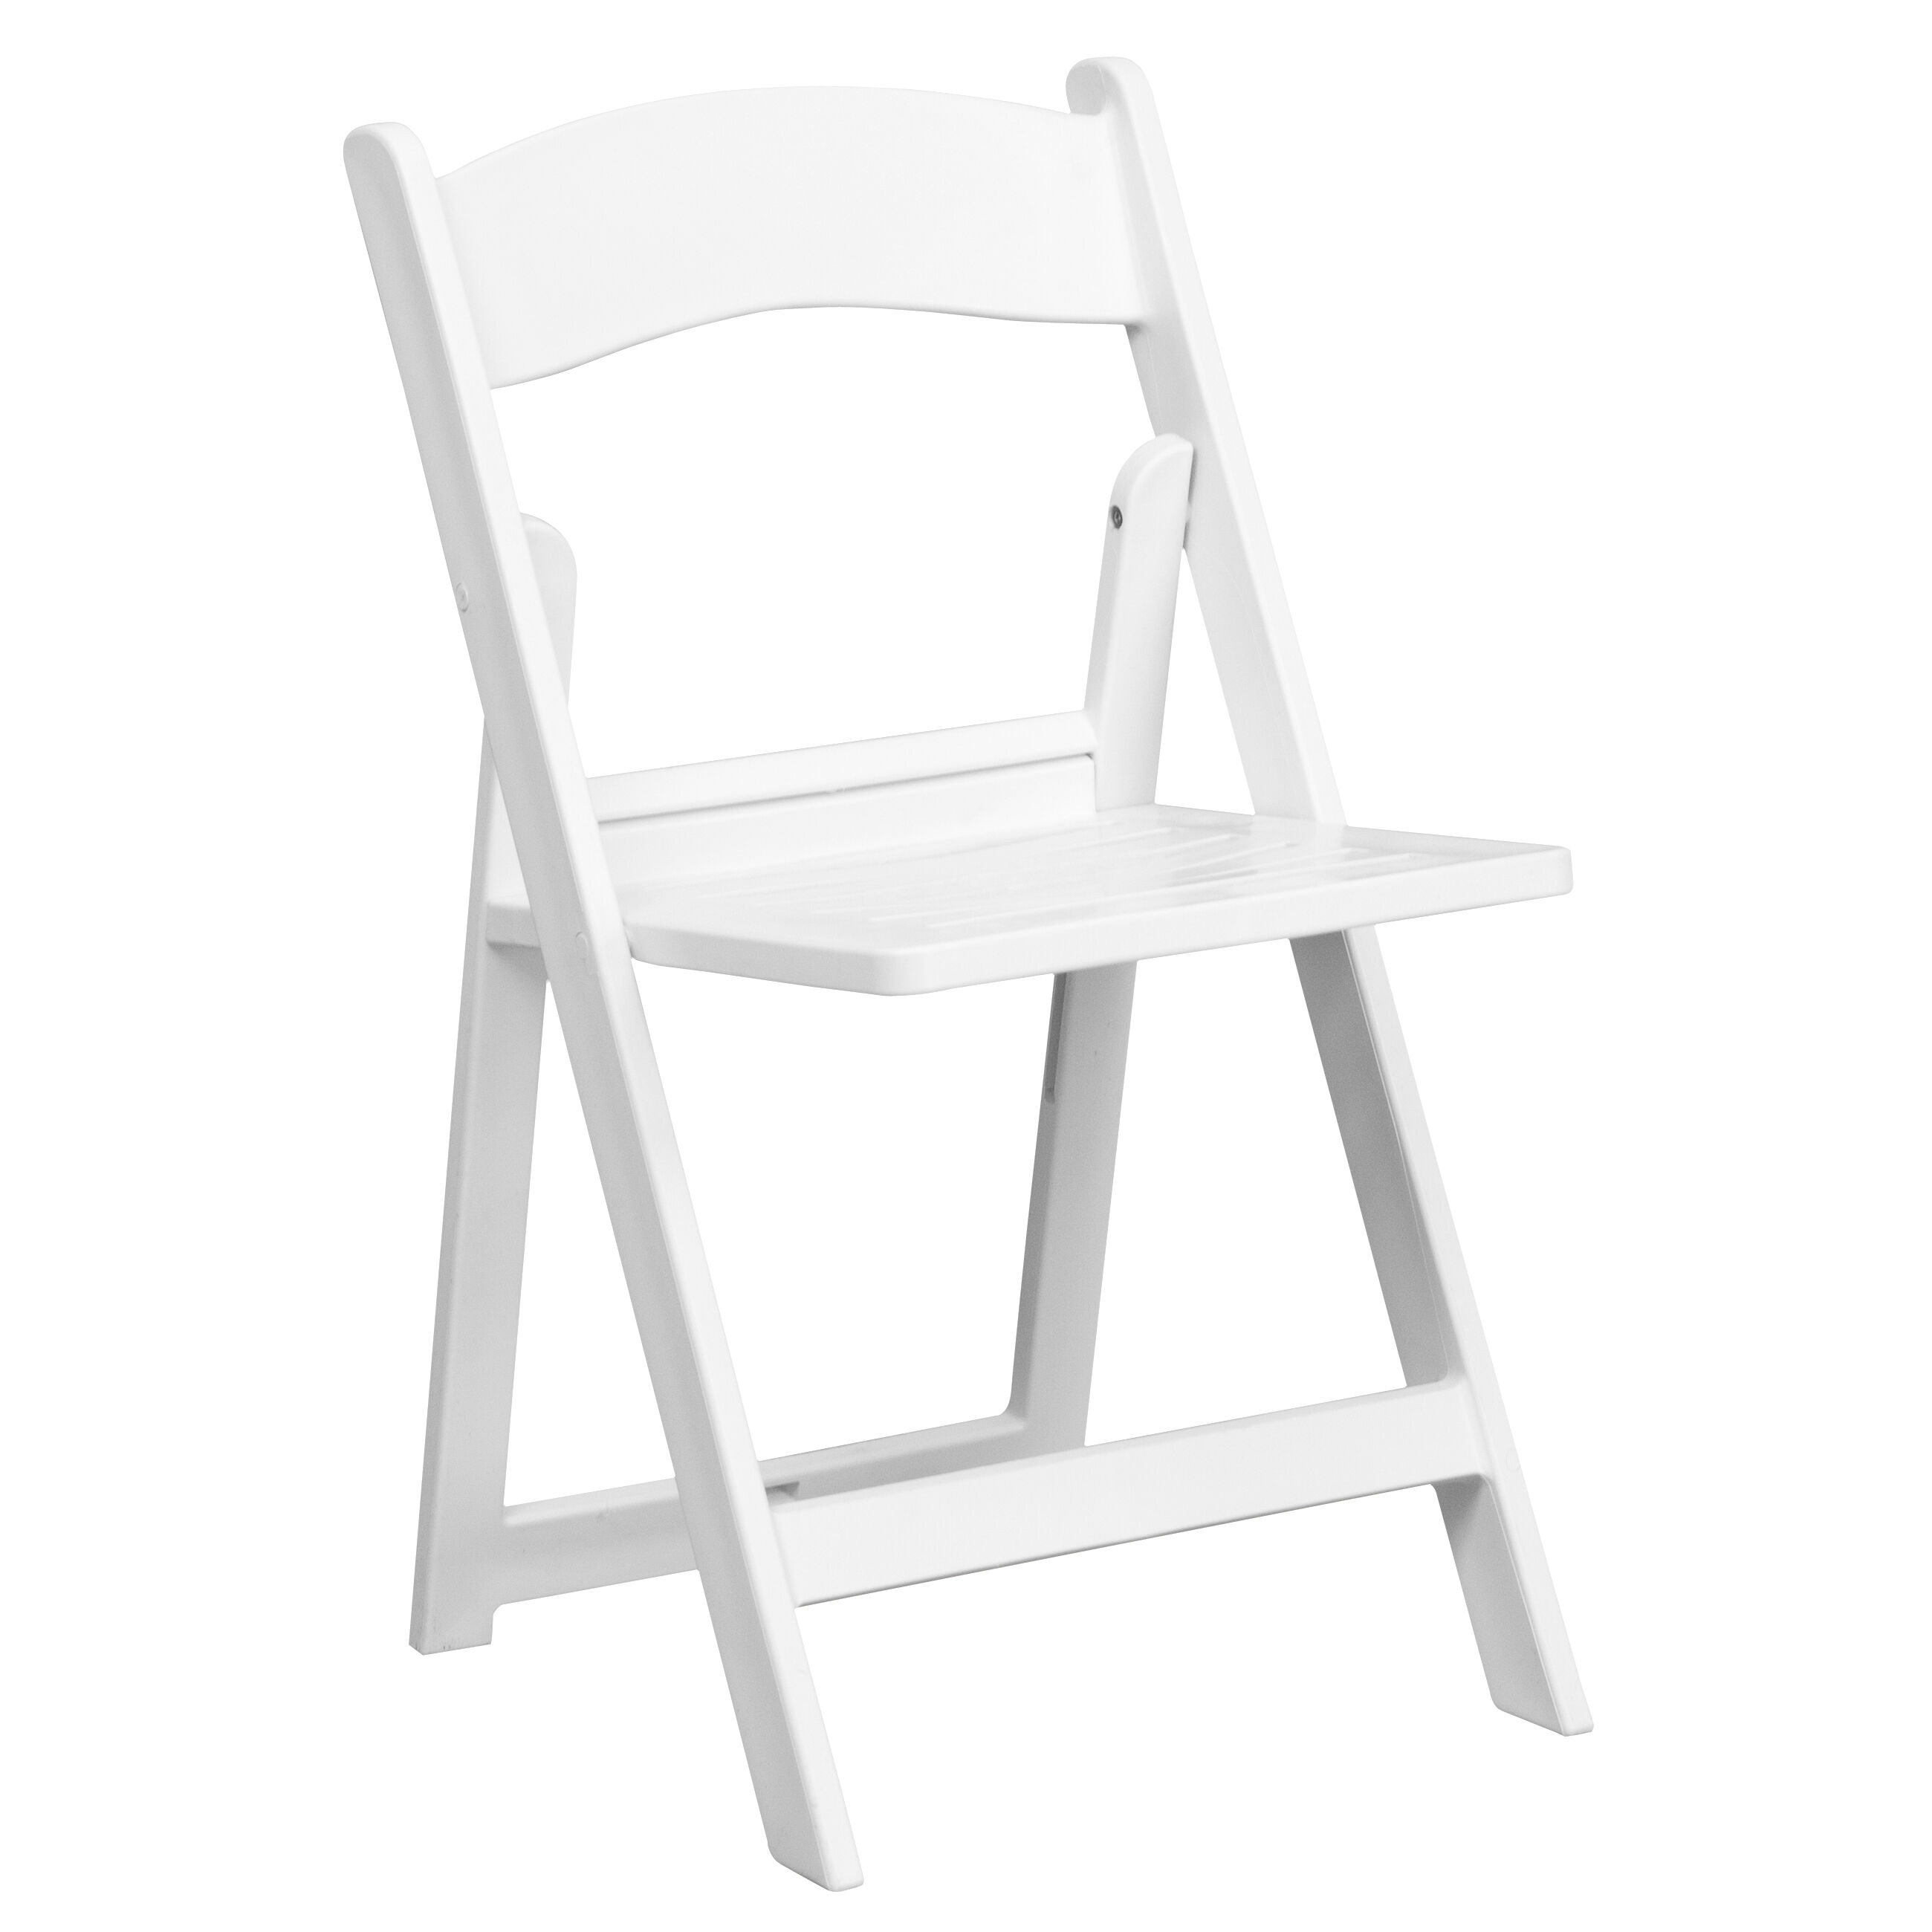 Captivating Flash Furniture HERCULES Series 1000 Lb. Capacity White Resin Folding Chair  With Slatted Seat LE L 1 WH SLAT GG | FoldingChairs4Less.com